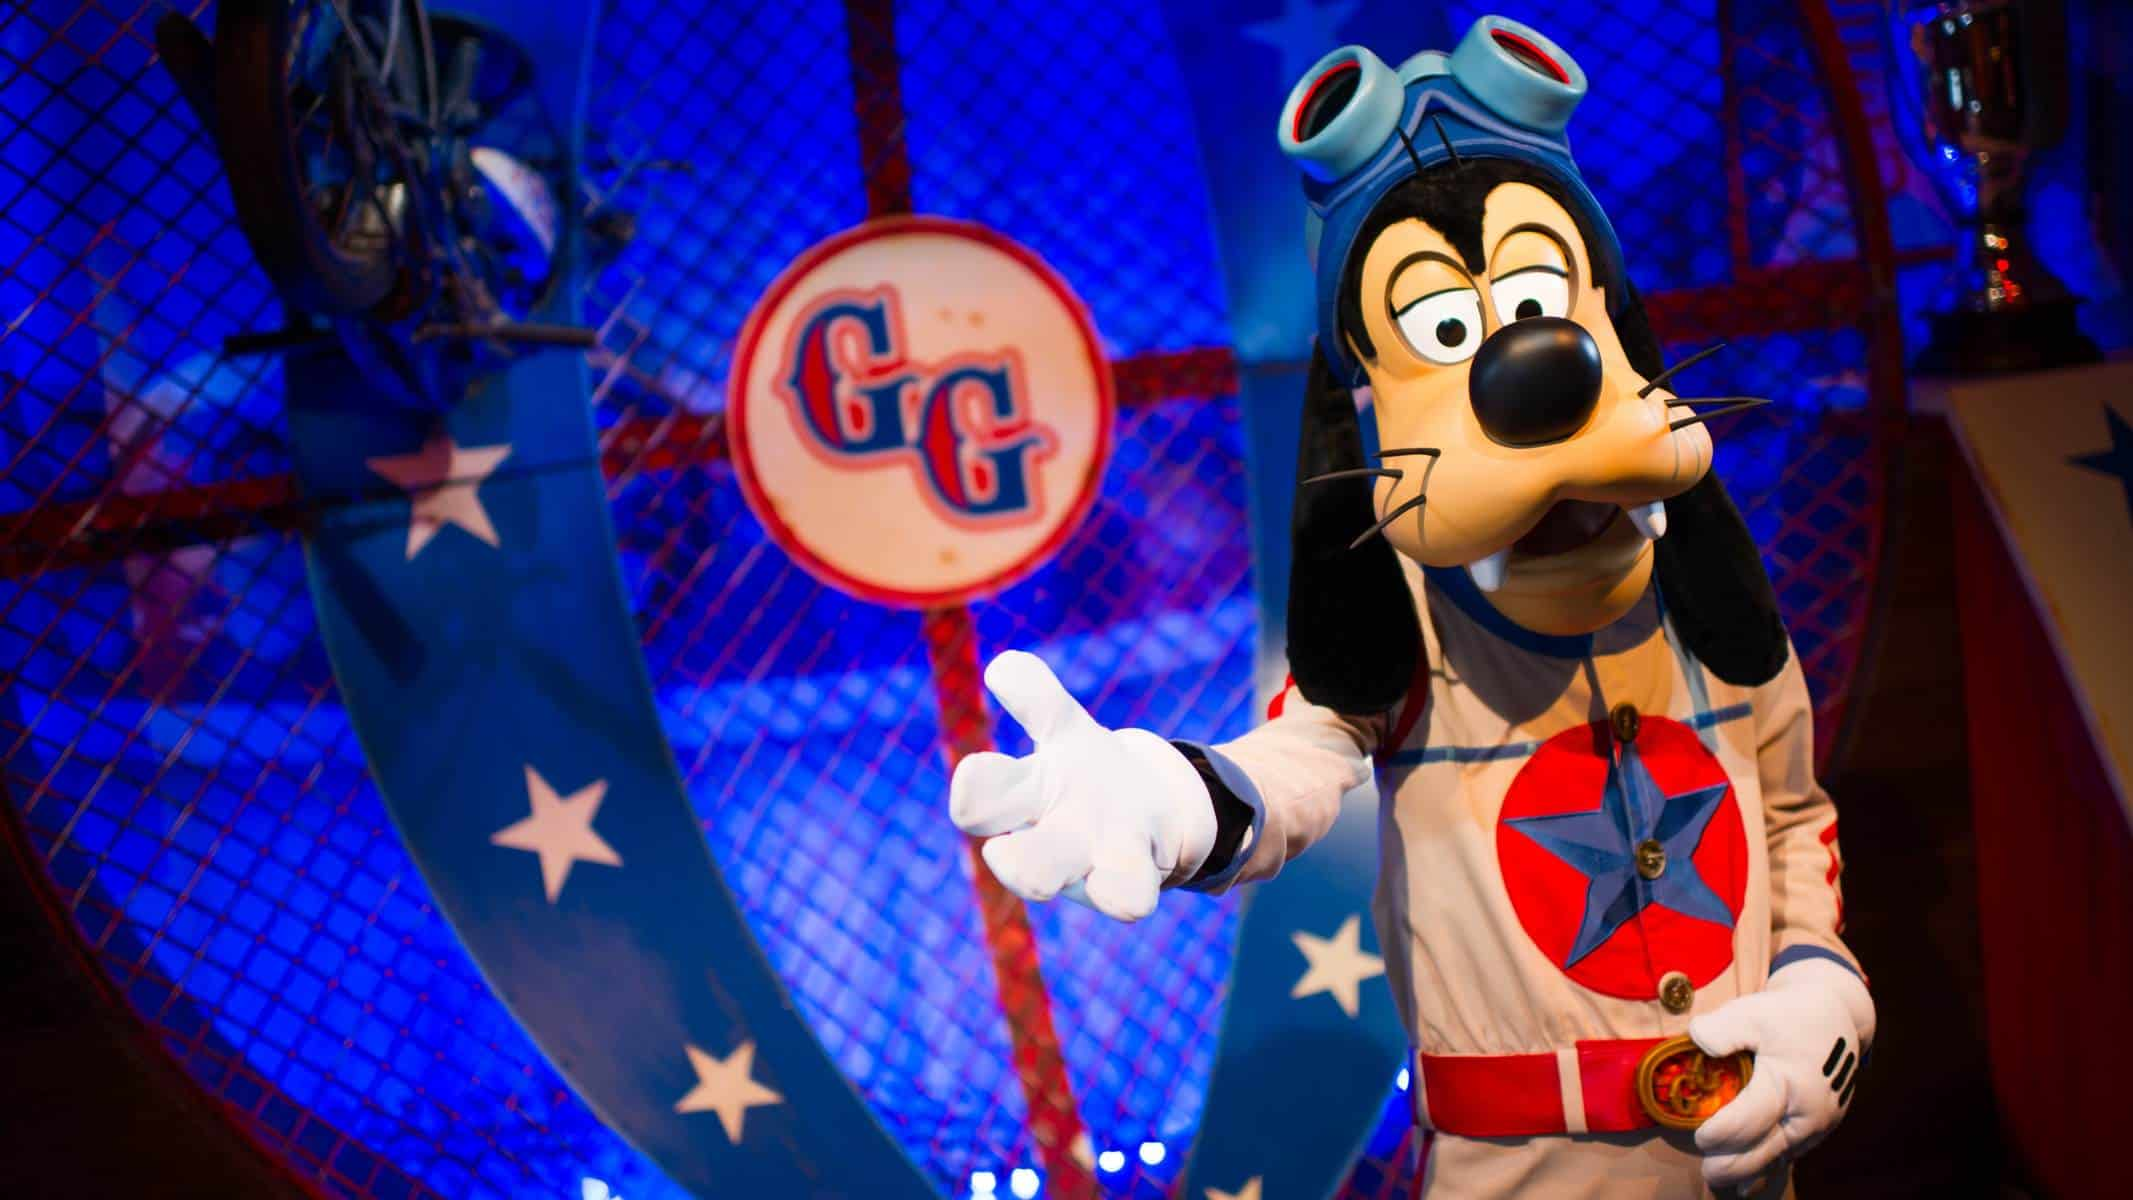 Goofy and Donald Duck (character meet) – Temporarily Unavailable